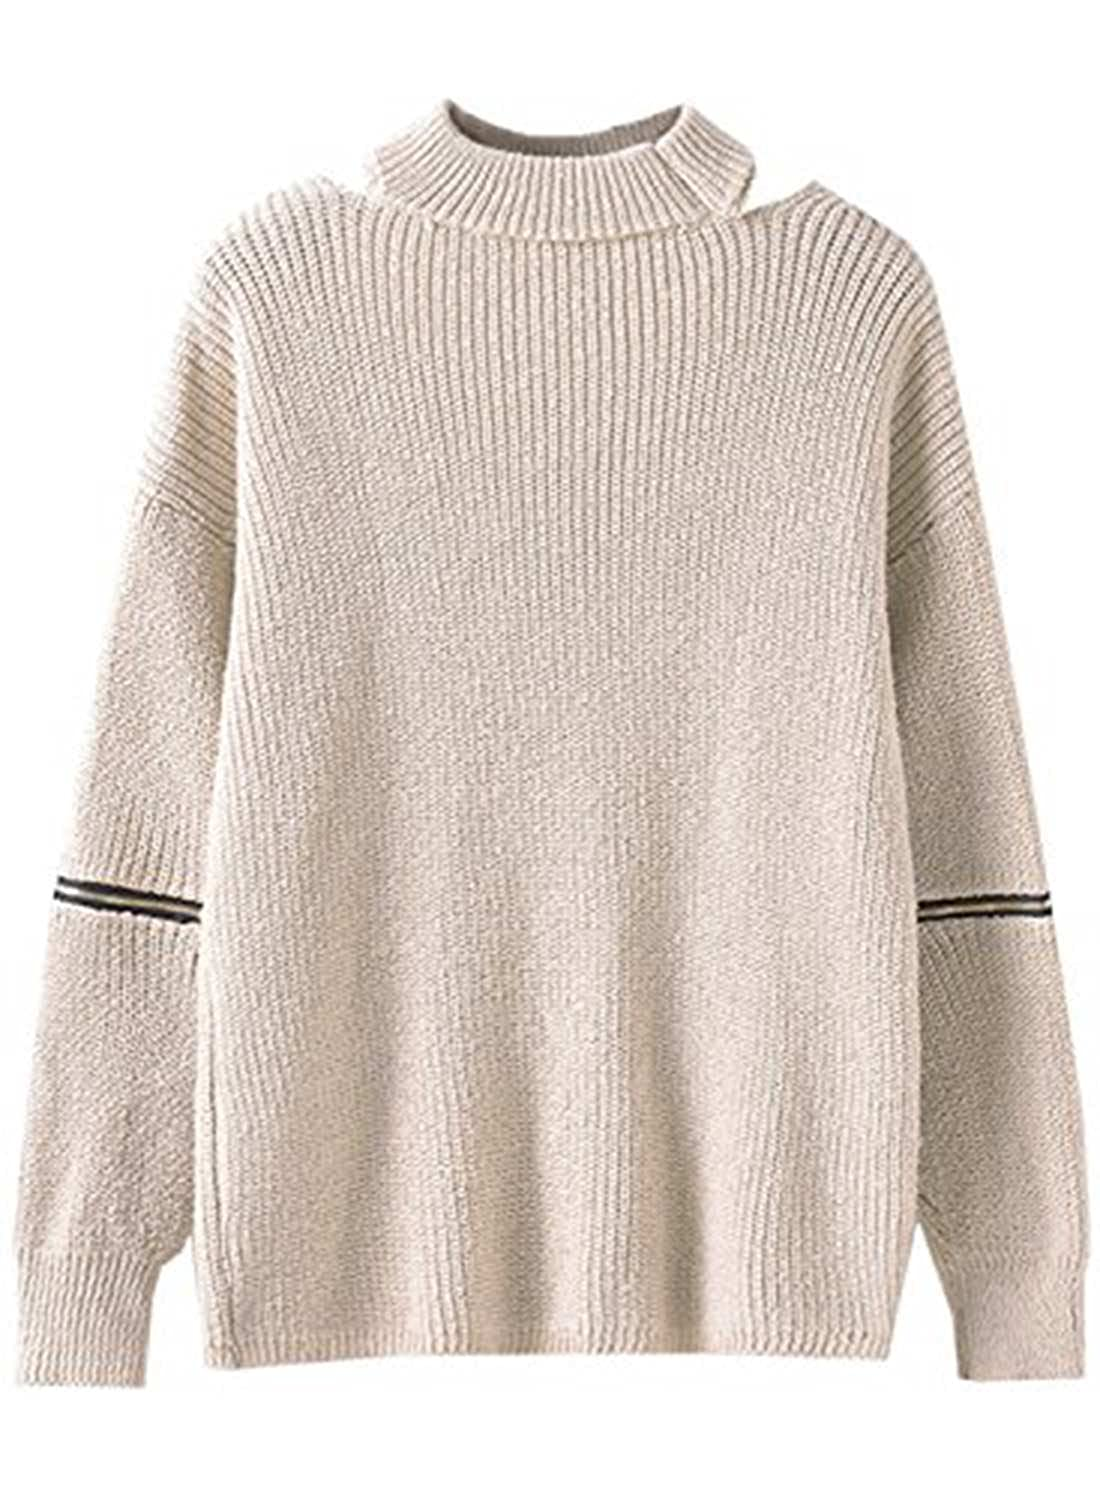 9fccb2c243 Futurino Women s Solid Choker V Neck Long Sleeve Loose Knit Sweater Jumper  Top Beige OneSize at Amazon Women s Clothing store